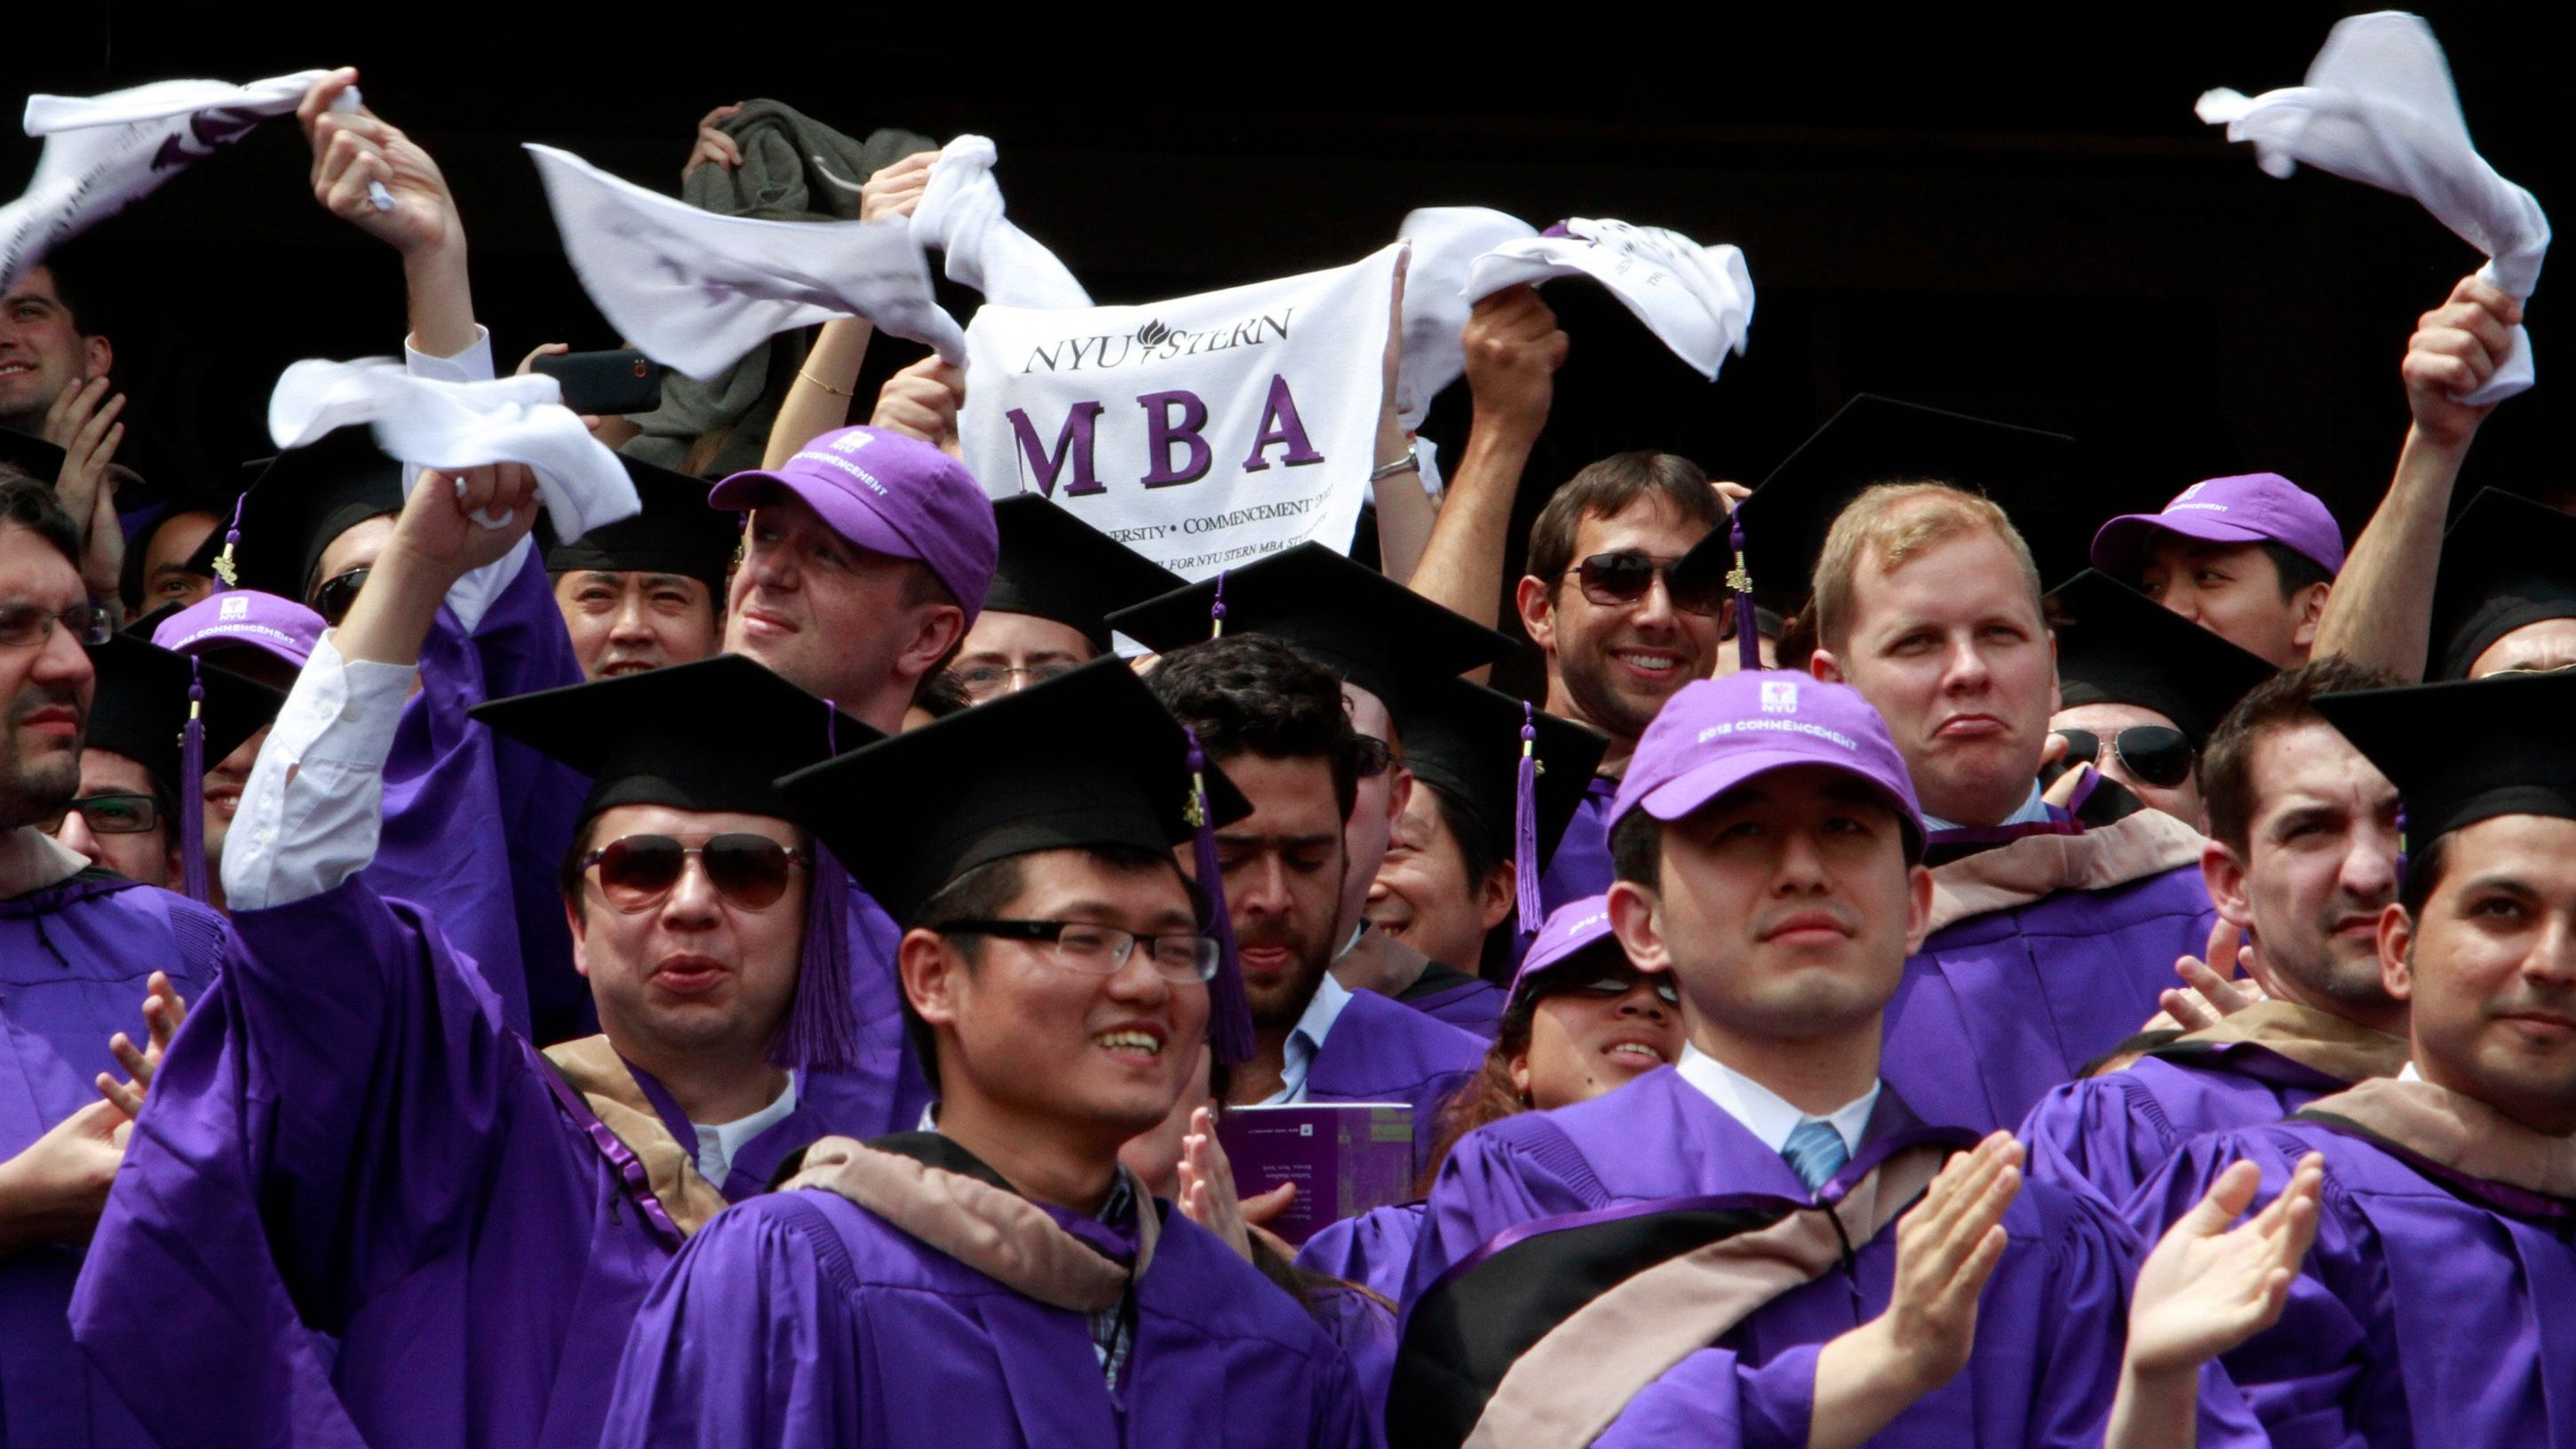 Aspen Institute names 10 MBA courses reinventing business schools